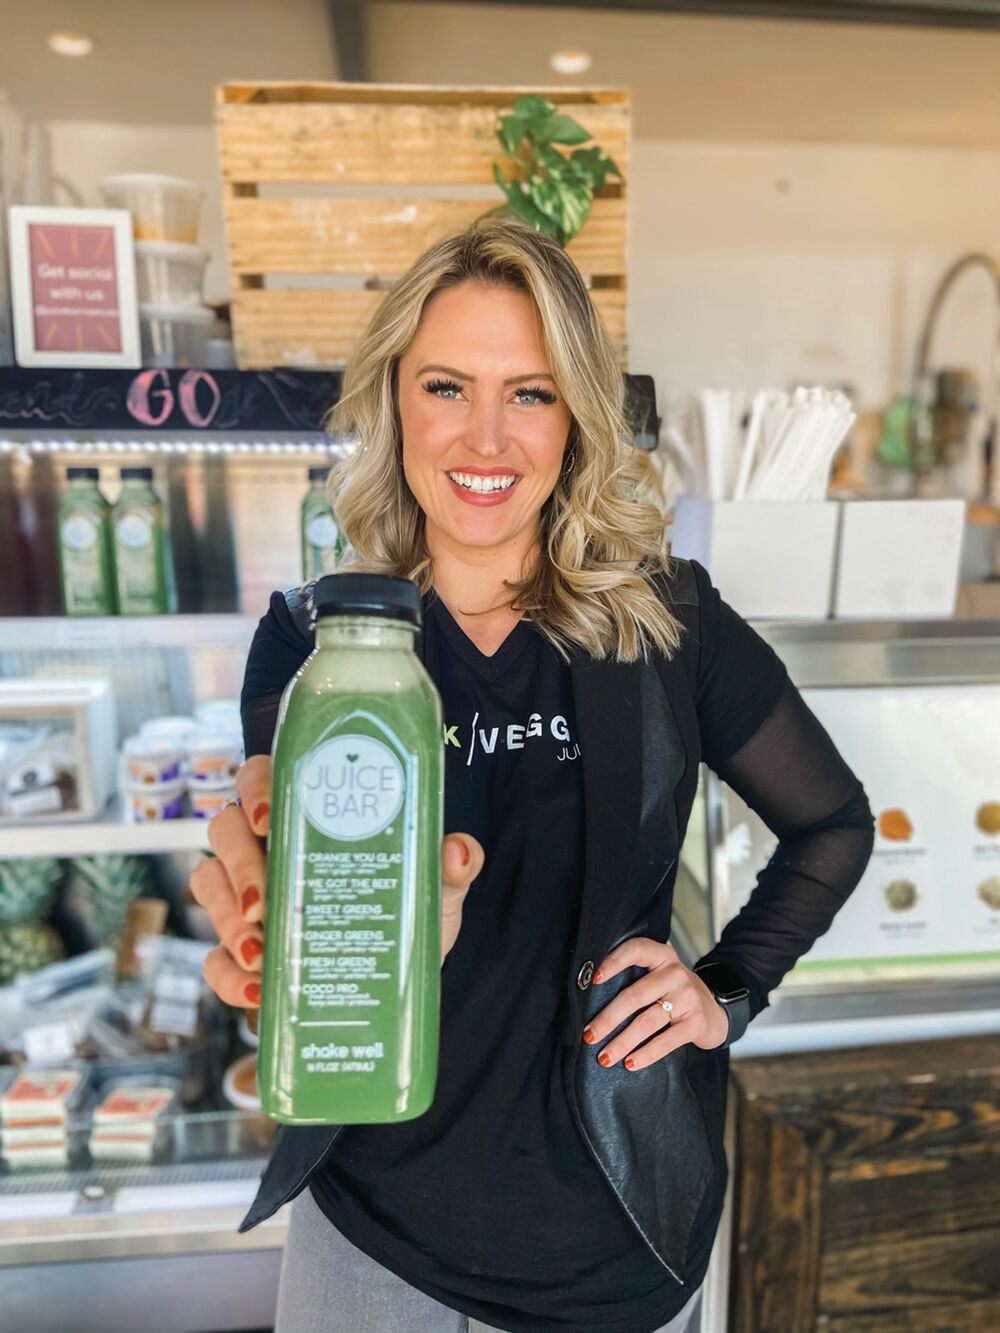 I Love Juice Bar's Sweet Greens juice is one of its most popular and recommended for people who are just beginning to incorporate juices into their lifestyles